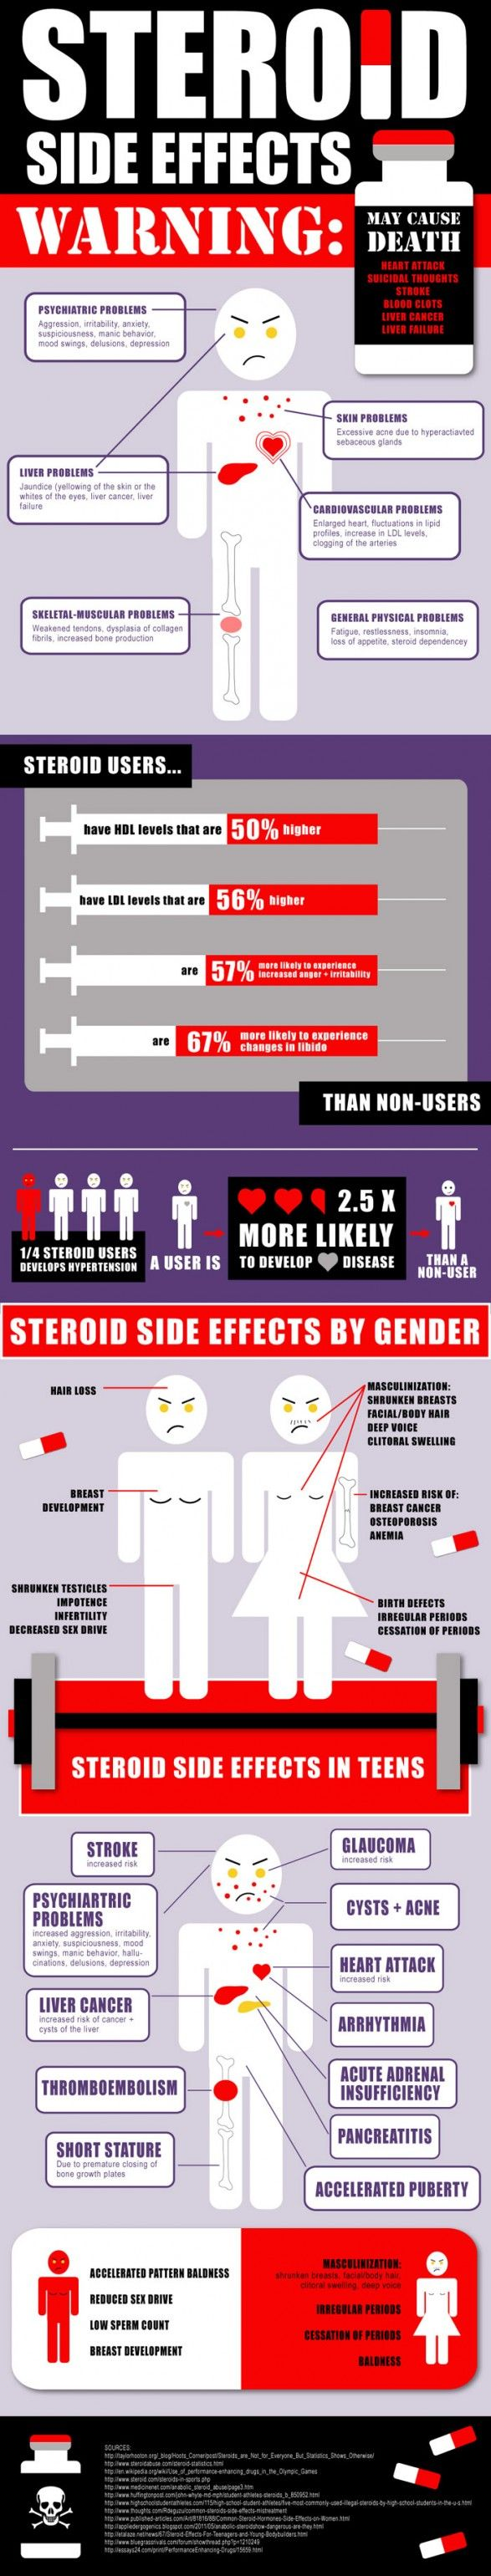 Prednisone Side Effects Long Term